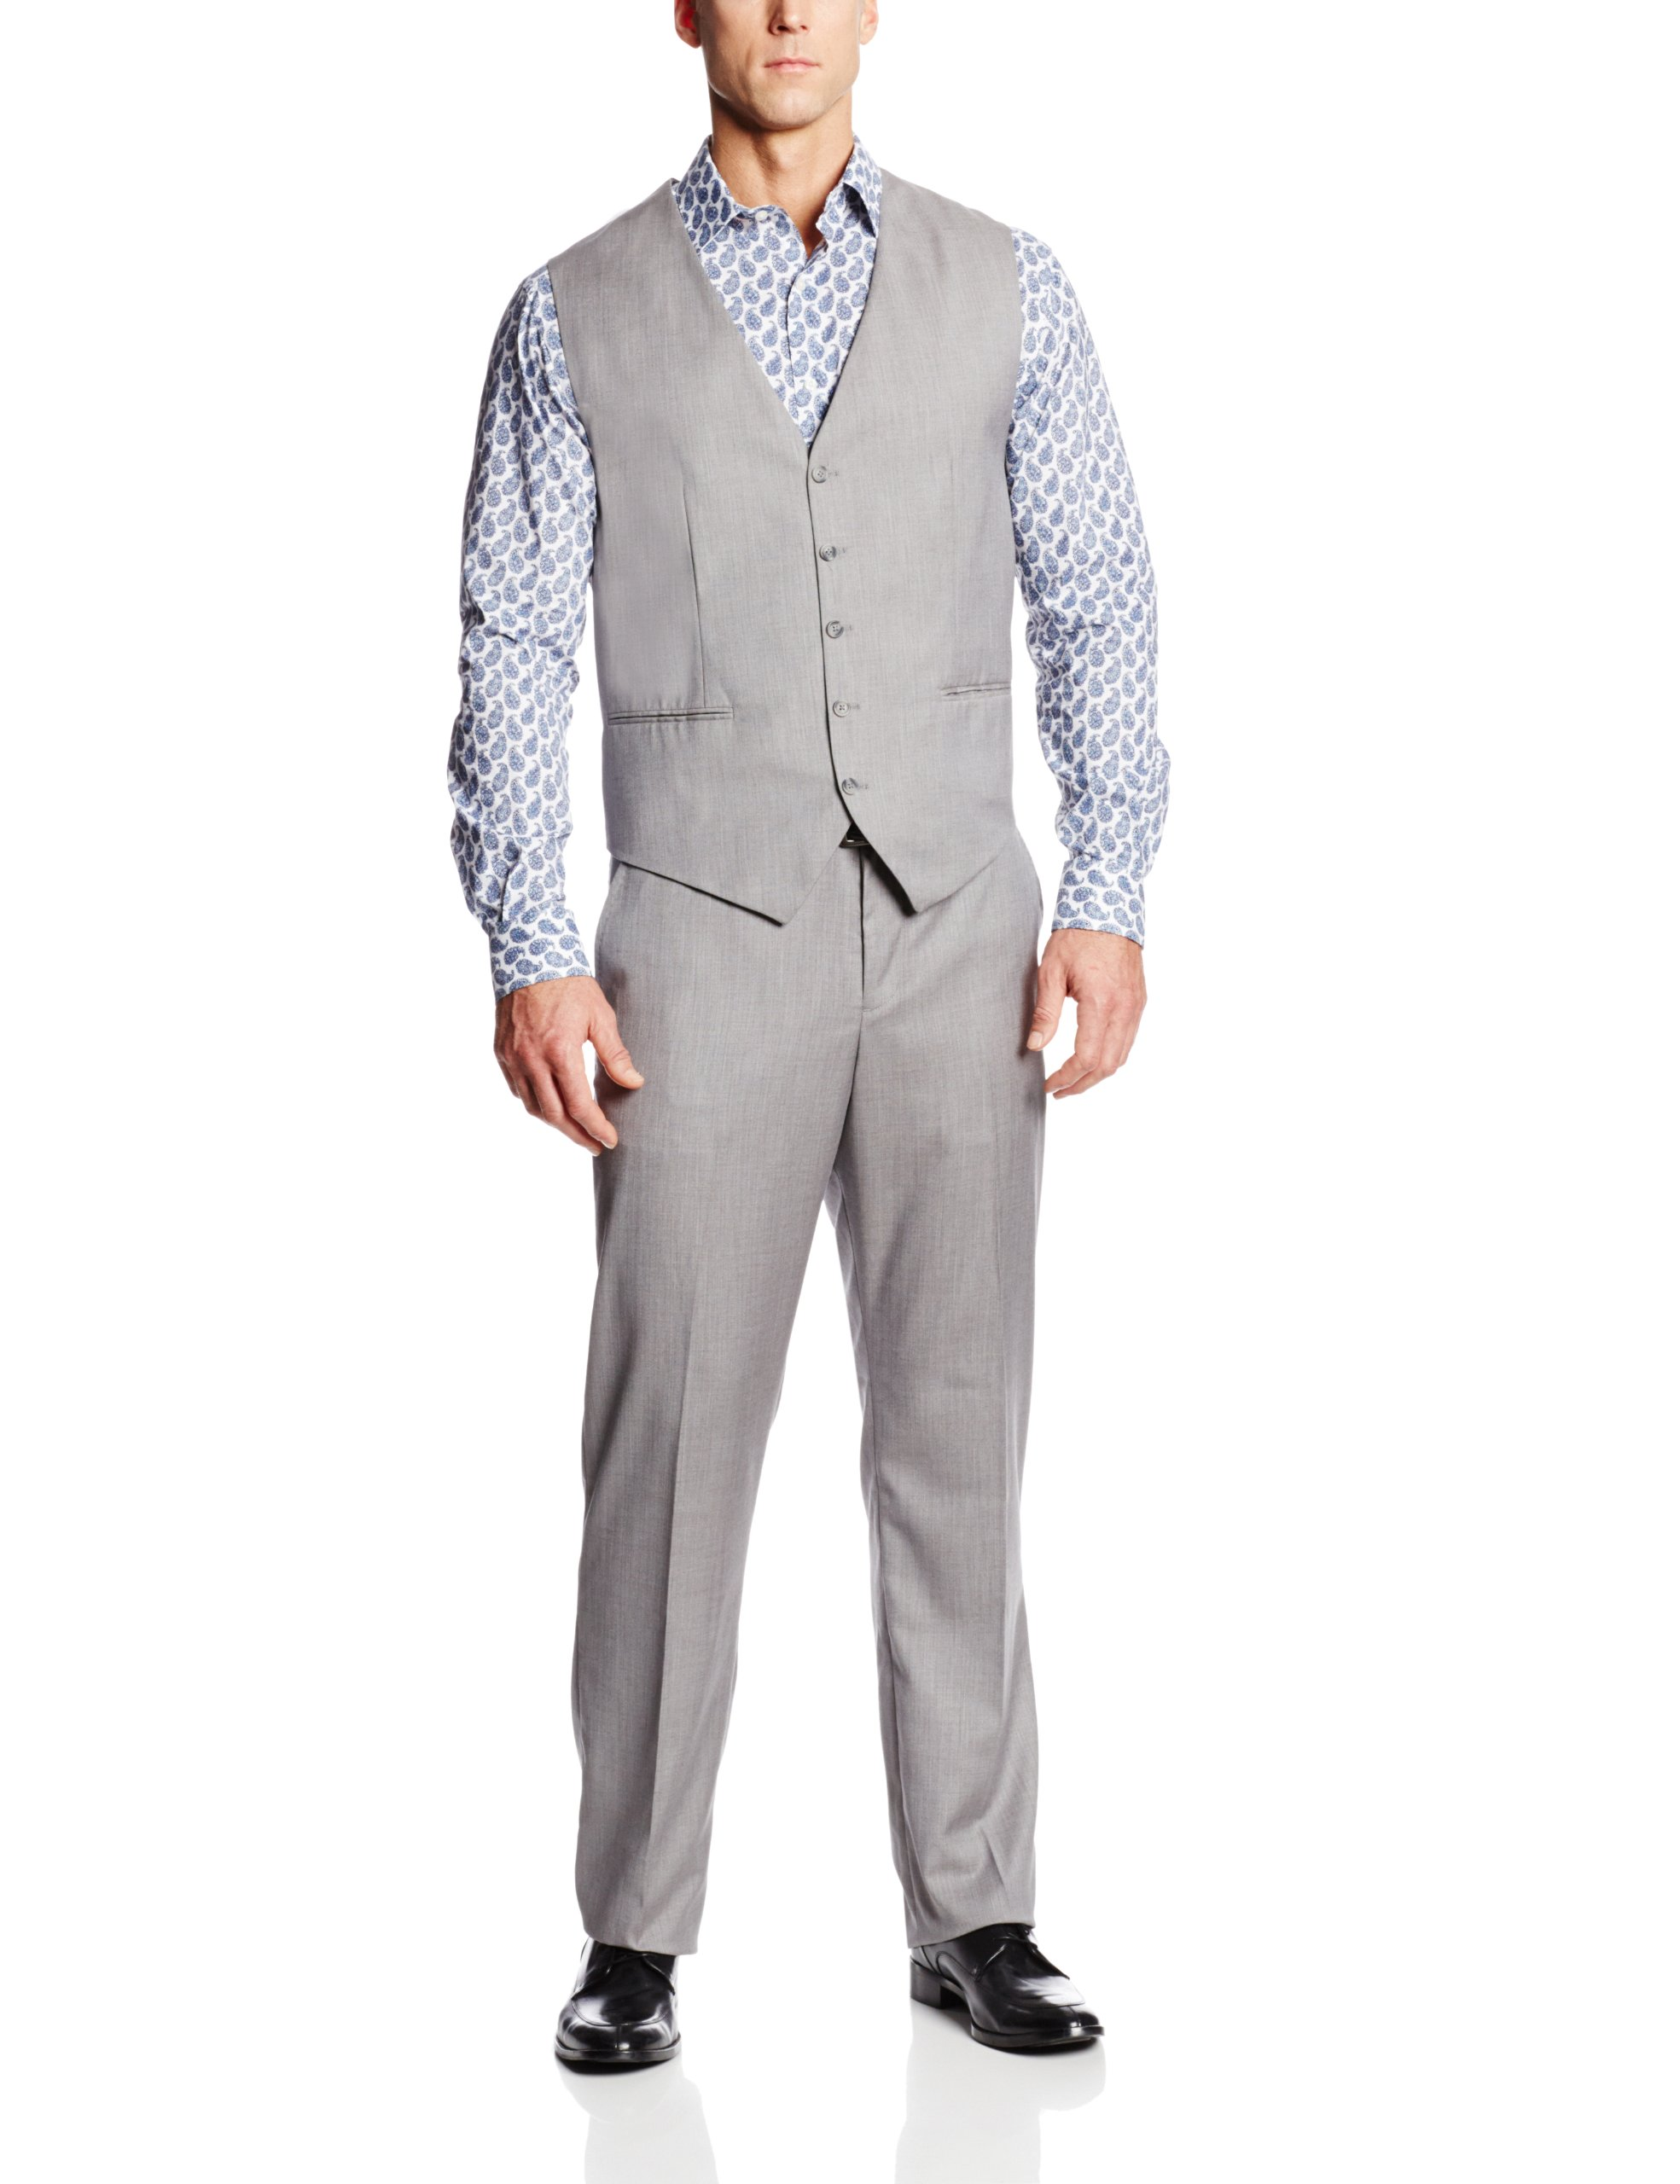 Perry Ellis Men's Big and Tall Linen Five Button Texture Vest, Brushed Nickel, 2X